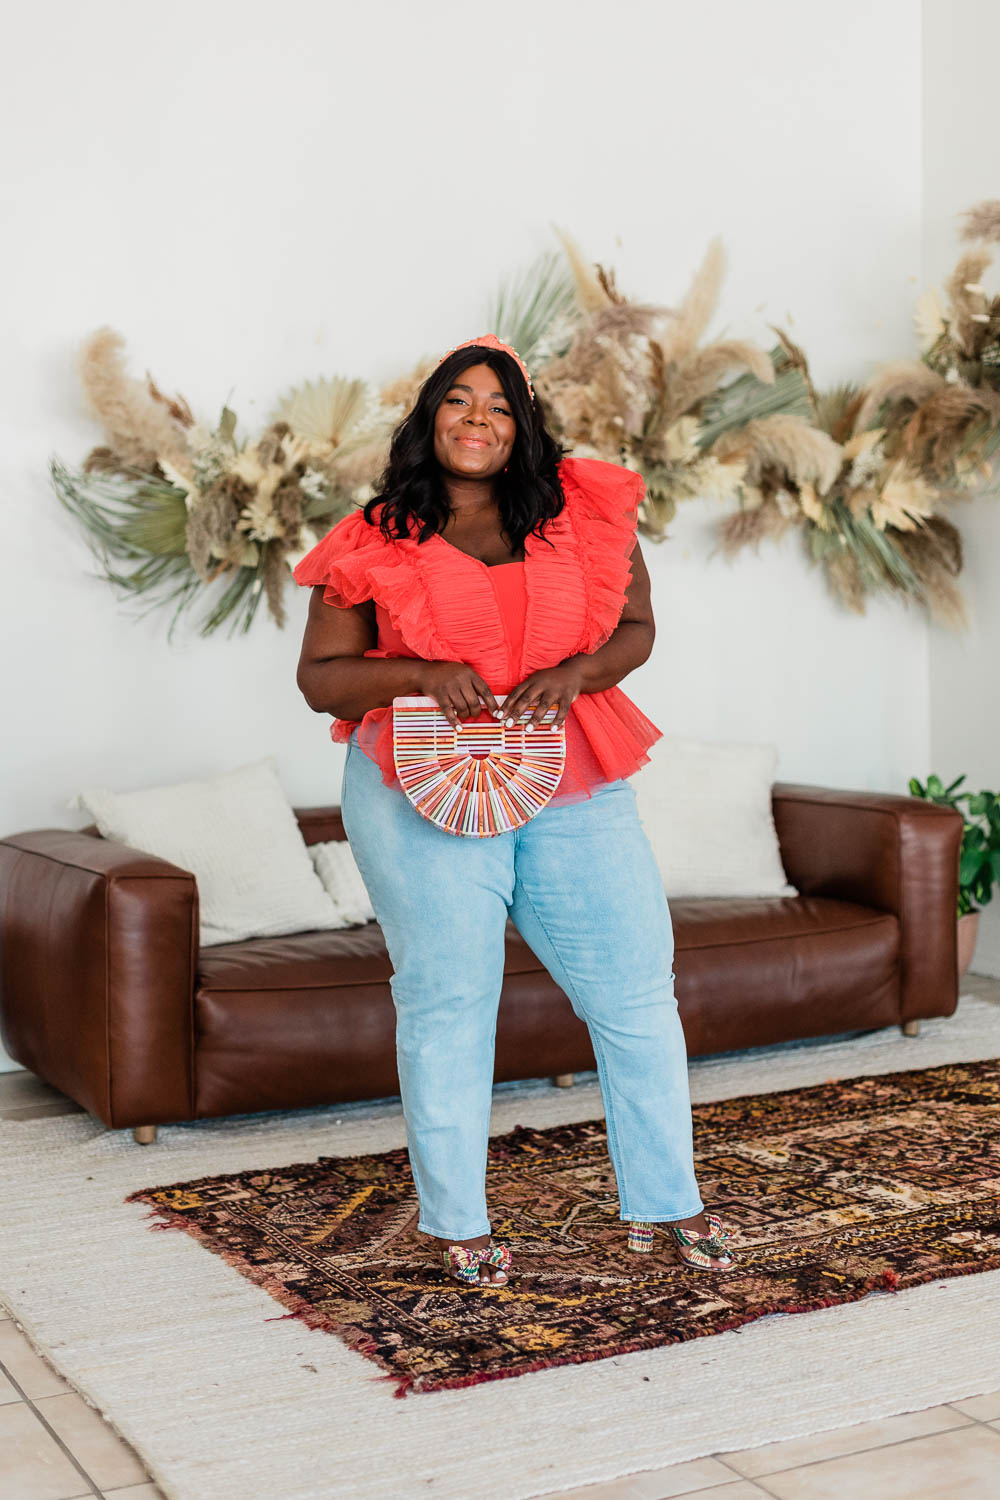 Anthropologie Pleated Tulle Blouse, Forever 21 Plus Size Straight Leg Jeans, Loeffler Randall Penny Bow Mules, Anthropologie Embellished Twist Knot Headband, Thamarr Musings of a Curvy Lady